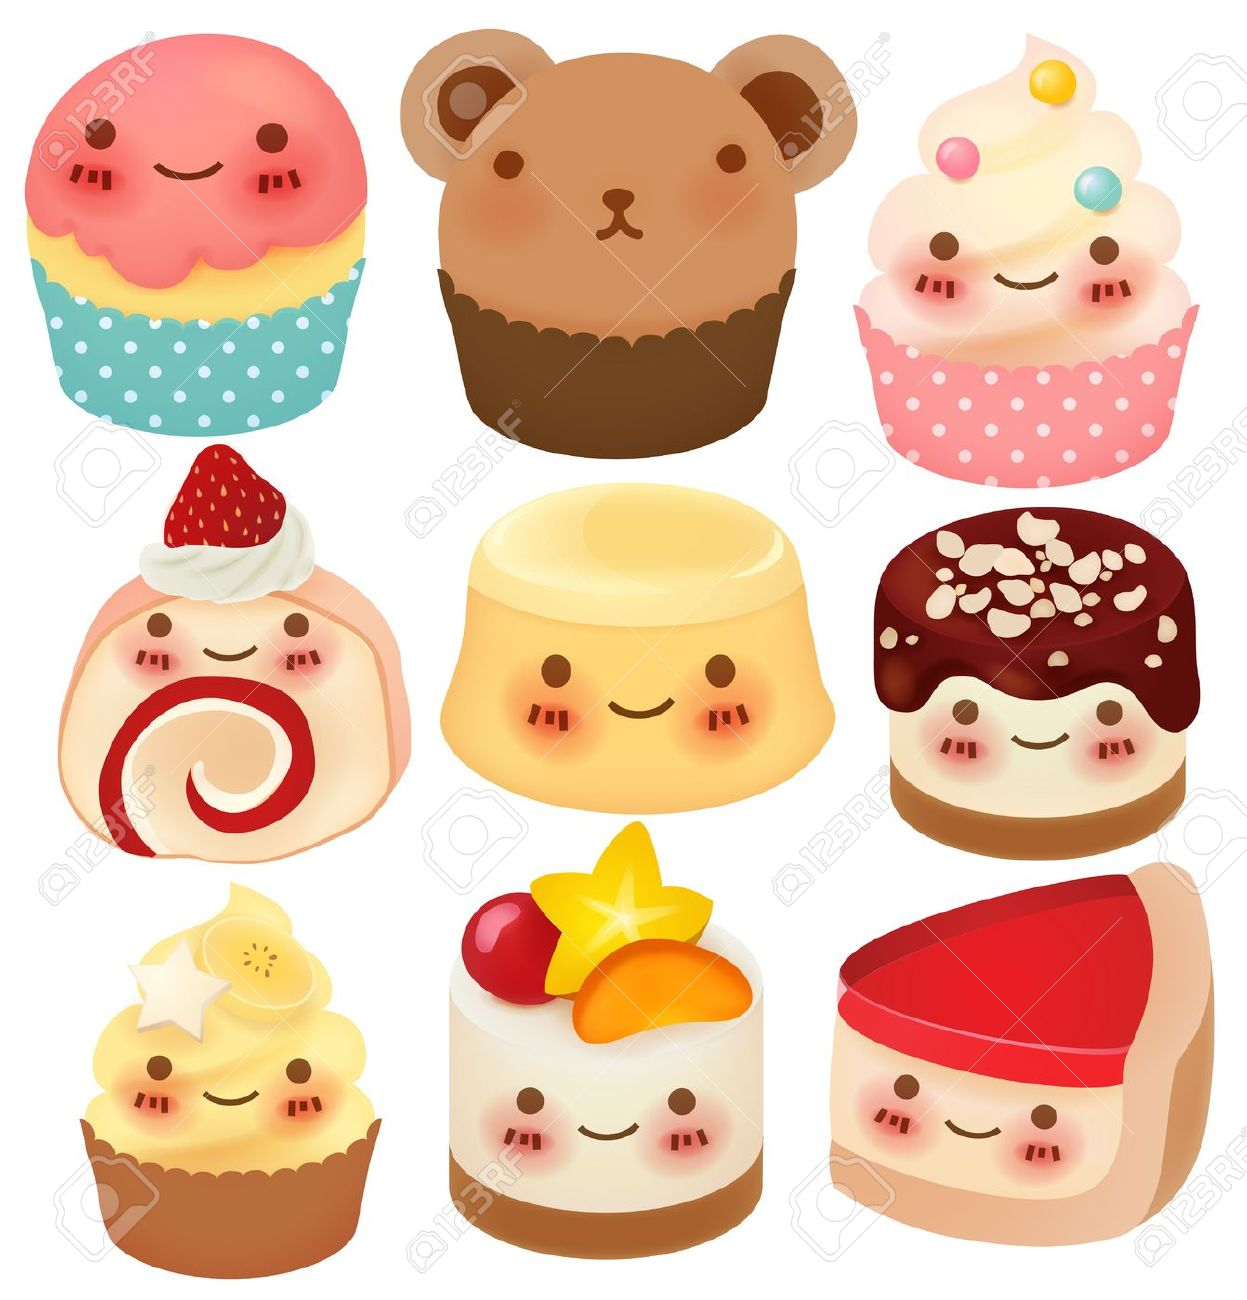 Cute slice of cake clipart picture download Cute chocolate cake clipart - ClipartFest picture download